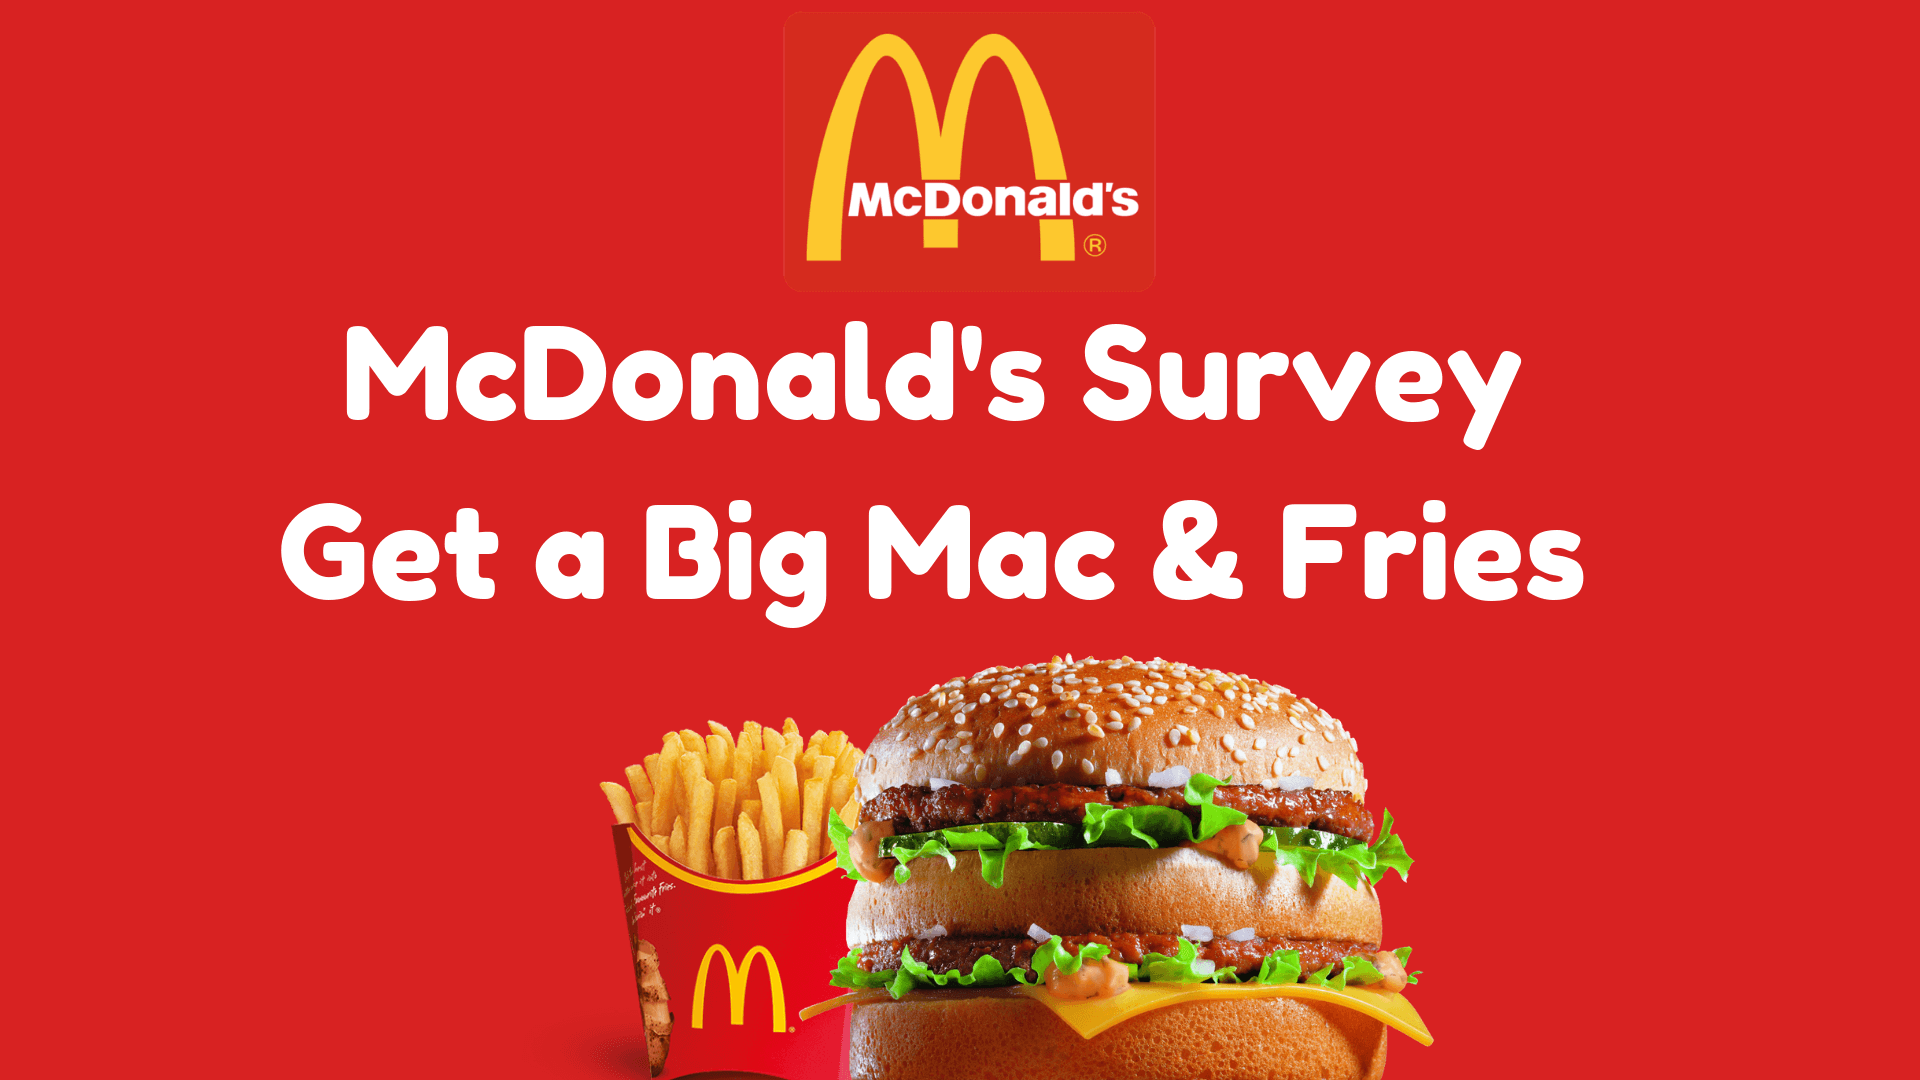 McDFoodForThoughts.Com: Take McDonalds Food For Thoughts Survey, Win Big Mac & Fries